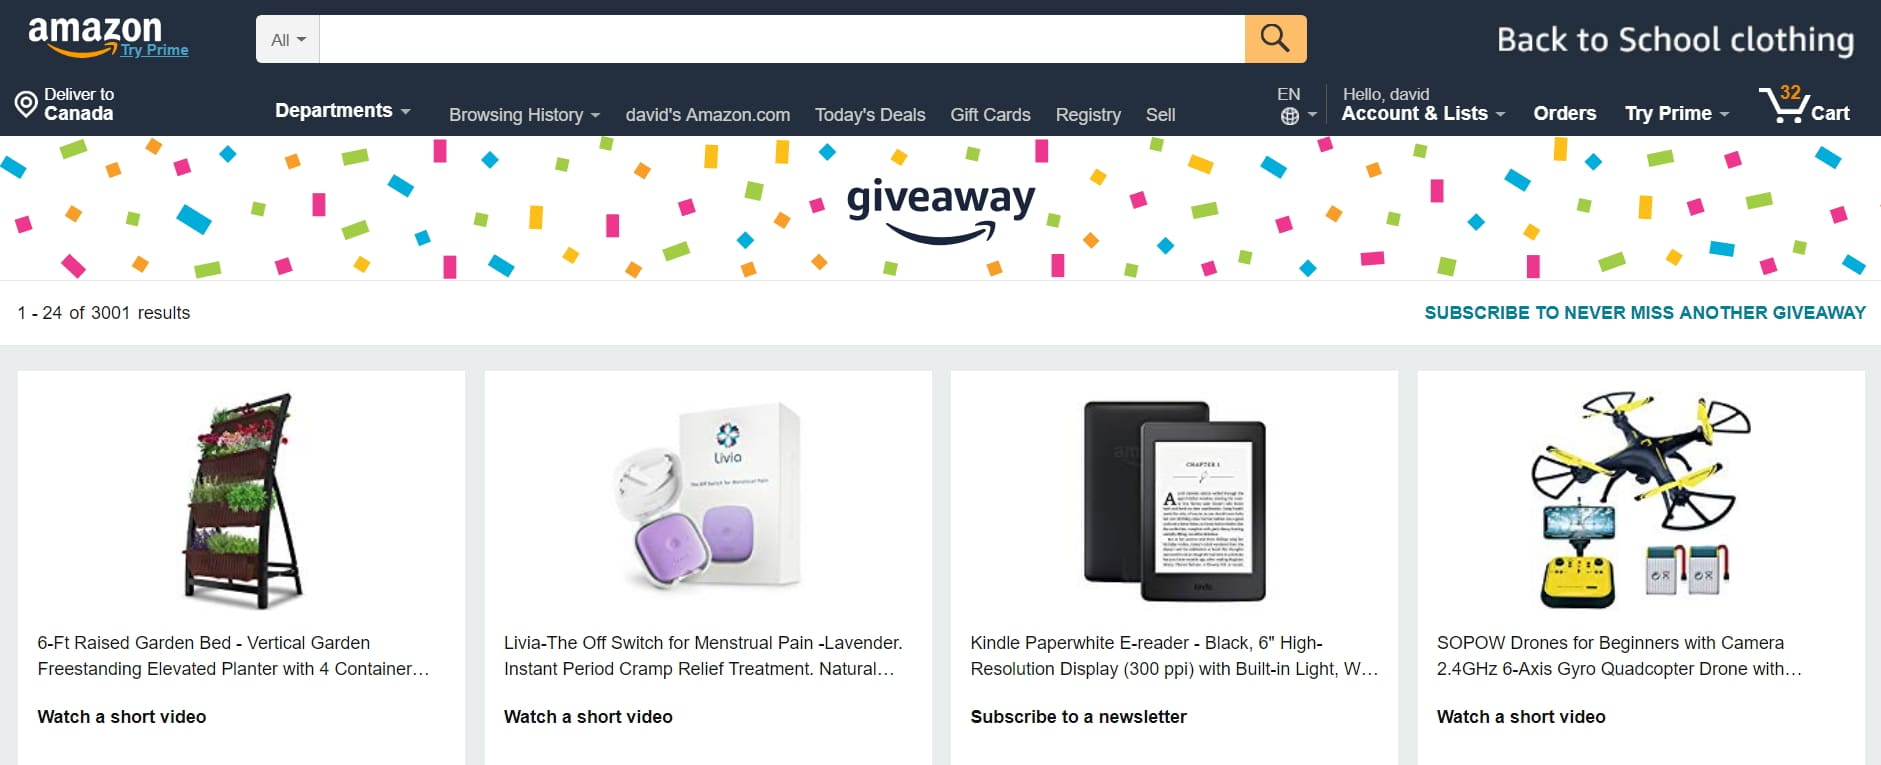 How to Use Product Giveaways on Amazon to Increase Your Sales | EcomCrew